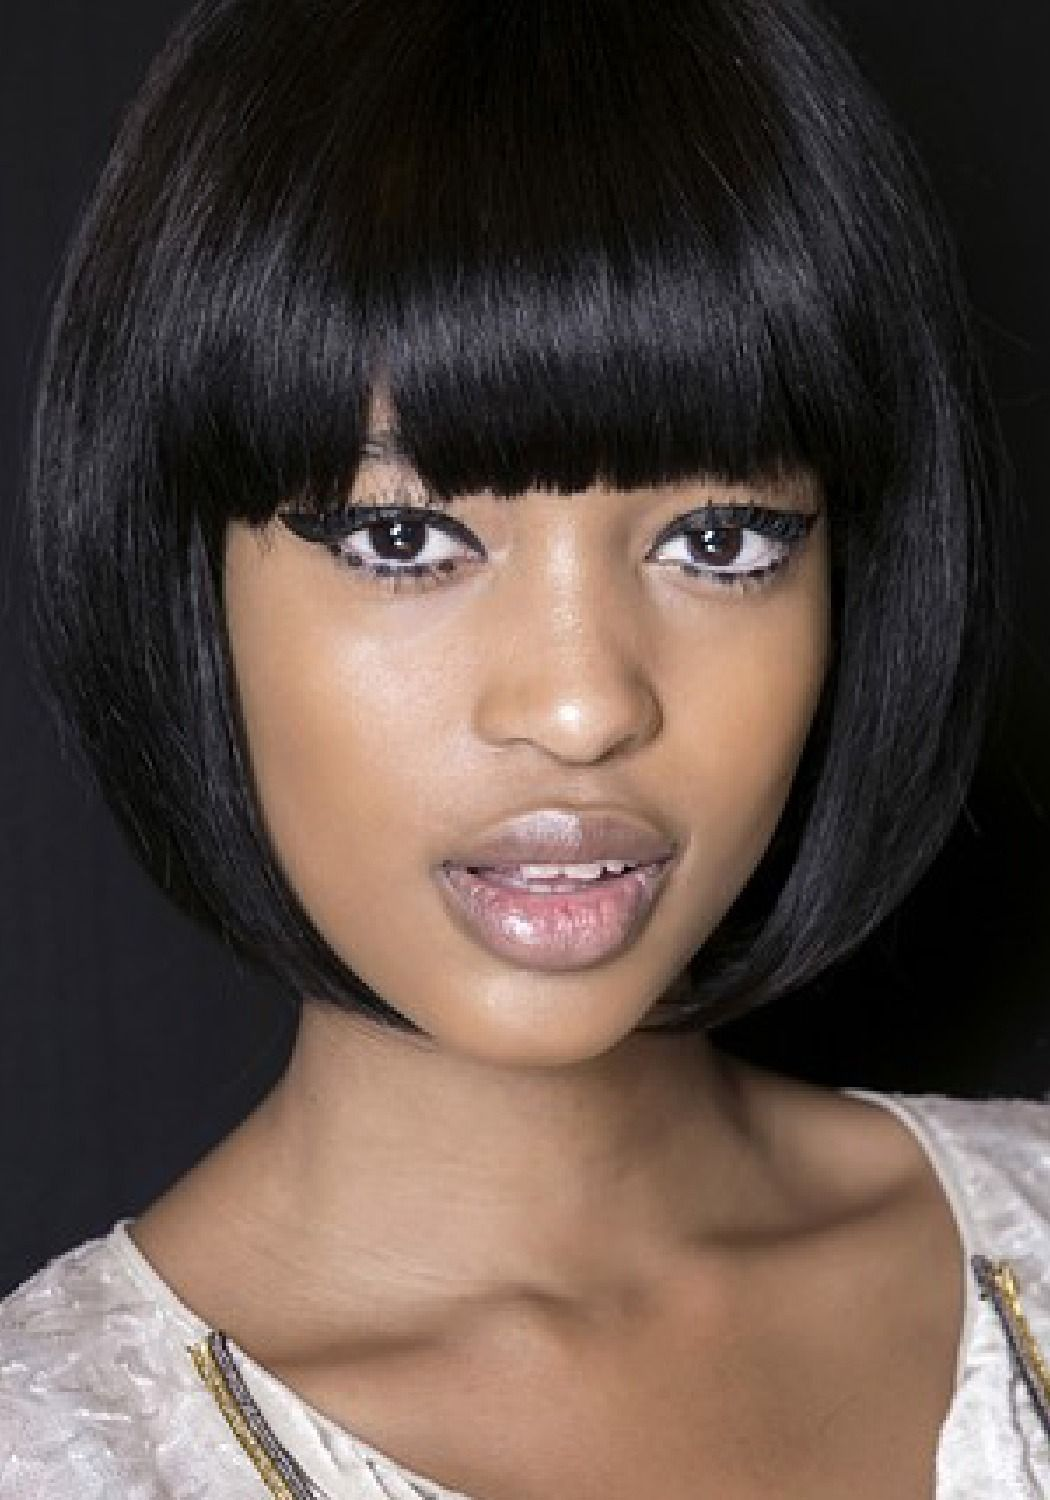 Fall 2013 Trend Report 12 Trends To Get You Through The Season Bob Hairstyles With Bangs Hair Styles Short Bob Hairstyles